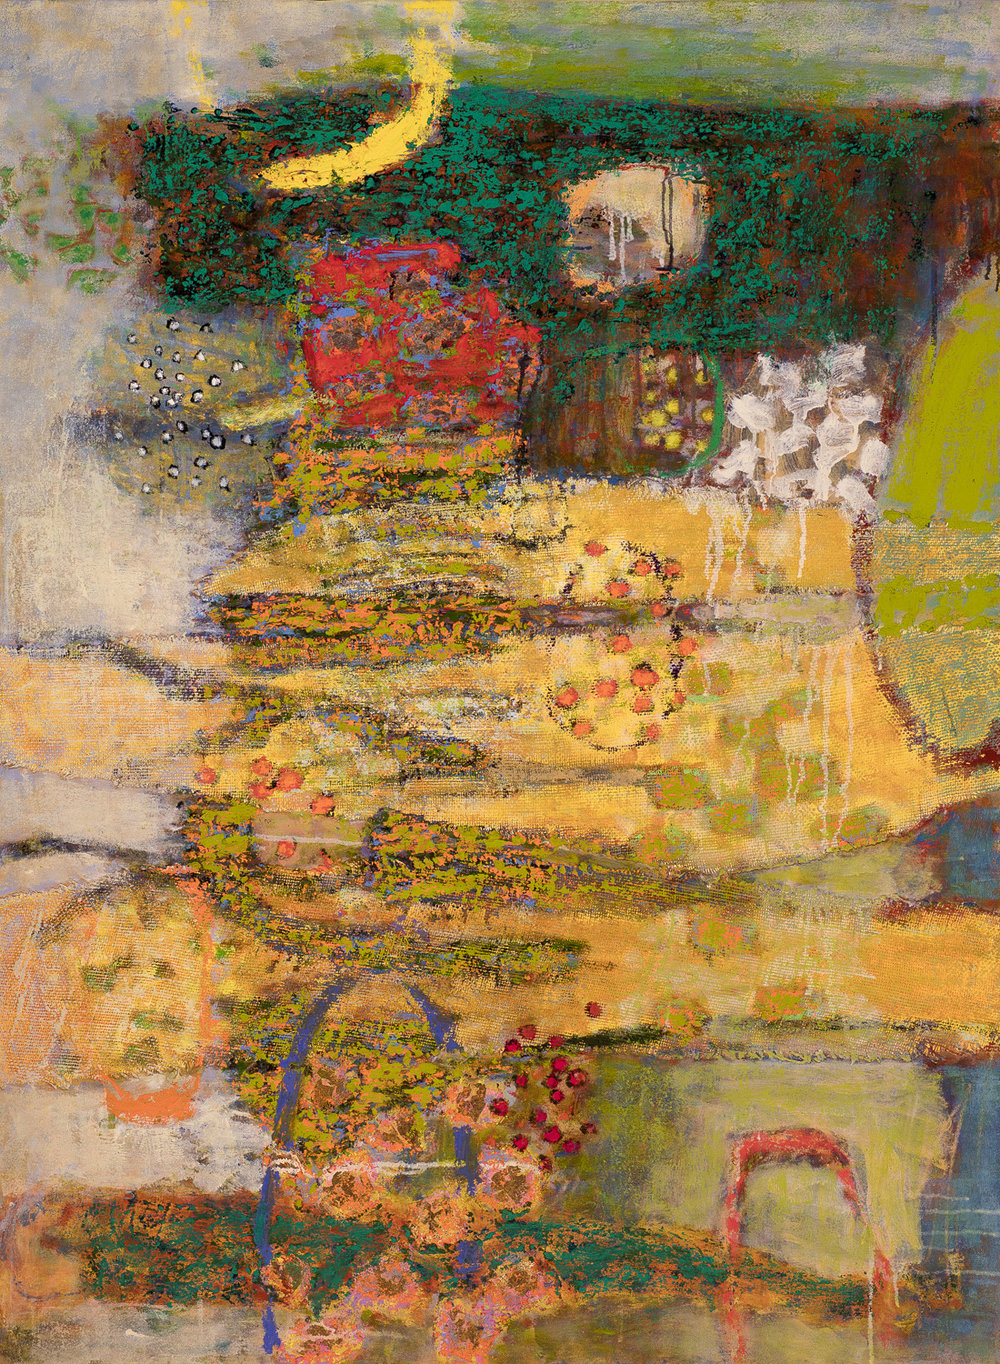 At the Crossroads of the Senses   | oil on canvas | 48 x 36"